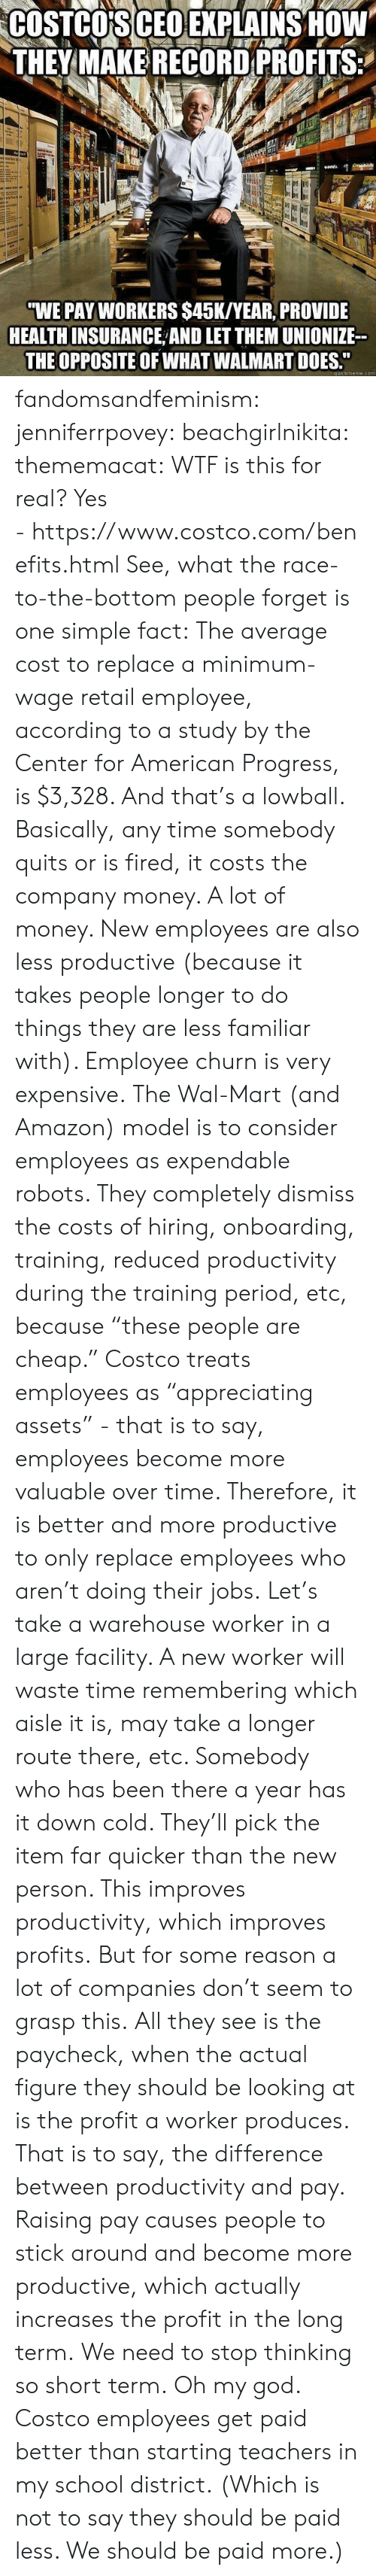 """quickmeme: COSTCO'S CEO EXPLAINS HOW  THEY MAKE RECORD PROFITS  """"WE PAY WORKERS $45K/YEAR, PROVIDE  HEALTH INSURANCE AND LET THEM UNIONIZE  THE OPPOSITE OF WHAT WALMART DOES.""""  quickmeme.com fandomsandfeminism:  jenniferrpovey:  beachgirlnikita:  thememacat: WTF is this for real? Yes -https://www.costco.com/benefits.html  See, what the race-to-the-bottom people forget is one simple fact: The average cost to replace a minimum-wage retail employee, according to a study by the Center for American Progress, is $3,328. And that's a lowball. Basically, any time somebody quits or is fired, it costs the company money. A lot of money. New employees are also less productive (because it takes people longer to do things they are less familiar with). Employee churn is very expensive. The Wal-Mart (and Amazon) model is to consider employees as expendable robots. They completely dismiss the costs of hiring, onboarding, training, reduced productivity during the training period, etc, because""""these people are cheap."""" Costco treats employees as""""appreciating assets"""" - that is to say, employees become more valuable over time. Therefore, it is better and more productive to only replace employees who aren't doing their jobs. Let's take a warehouse worker in a large facility. A new worker will waste time remembering which aisle it is, may take a longer route there, etc. Somebody who has been there a year has it down cold. They'll pick the item farquicker than the new person. This improves productivity, which improves profits. But for some reason a lot of companies don't seem to grasp this. All they see is the paycheck, when the actual figure they should be looking at is the profita worker produces. That is to say, the difference between productivity and pay. Raising pay causes people to stick around and become more productive, which actually increases the profit in the long term. We need to stop thinking so short term.   Oh my god. Costco employees get paid better than starting teachers in"""